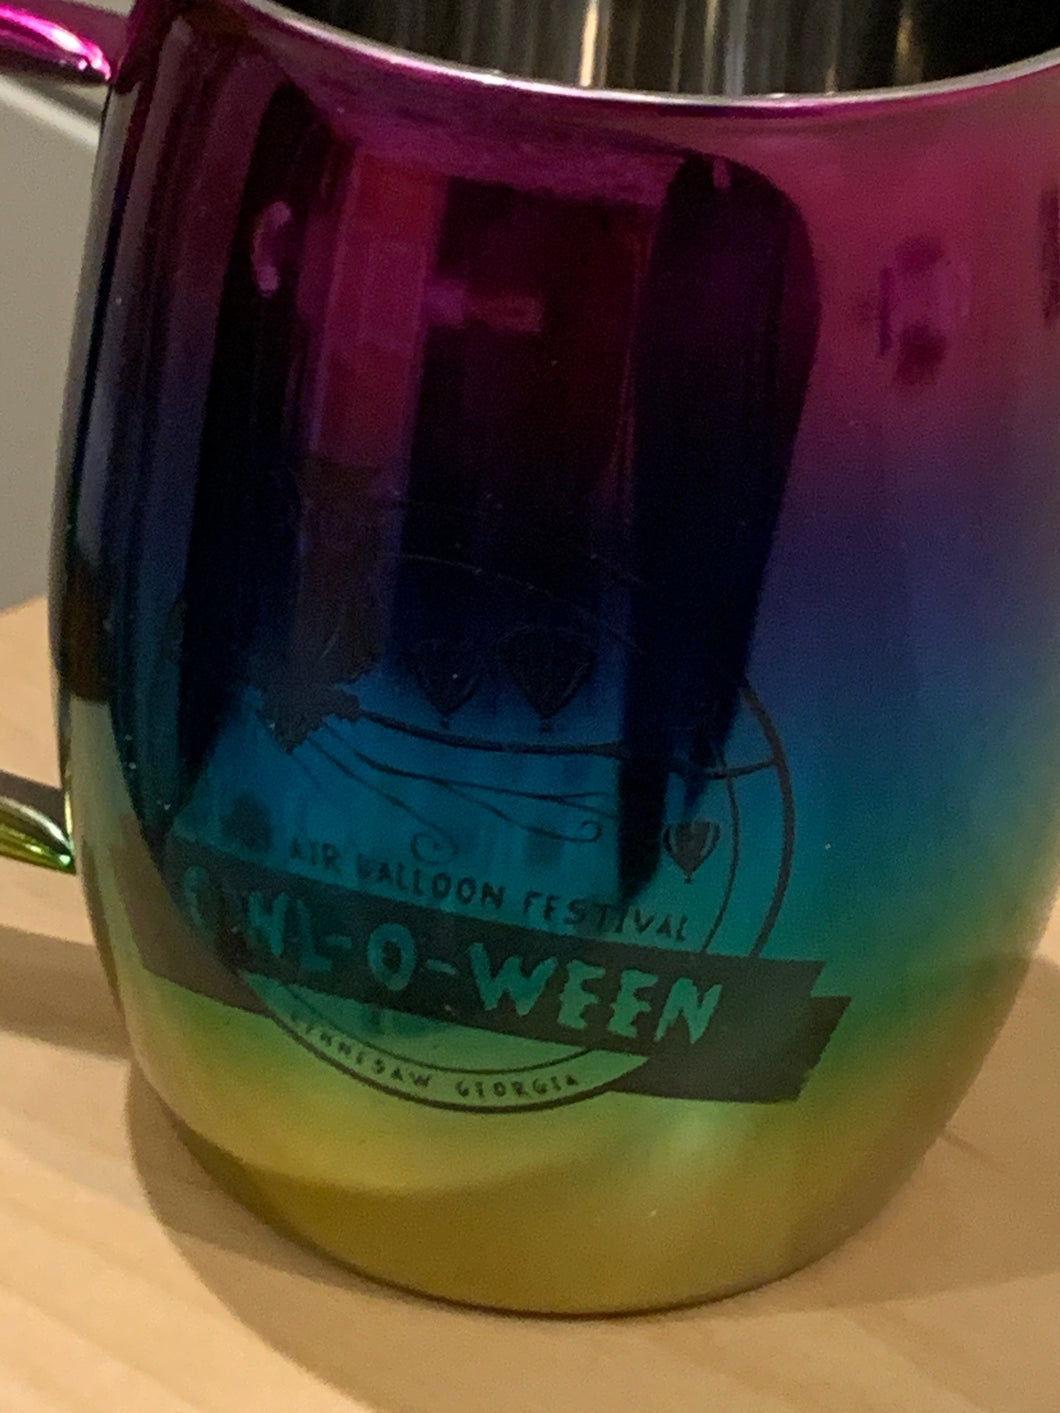 Stainless Steel Mugs - Owl-O-Ween (Rainbow Barrel)